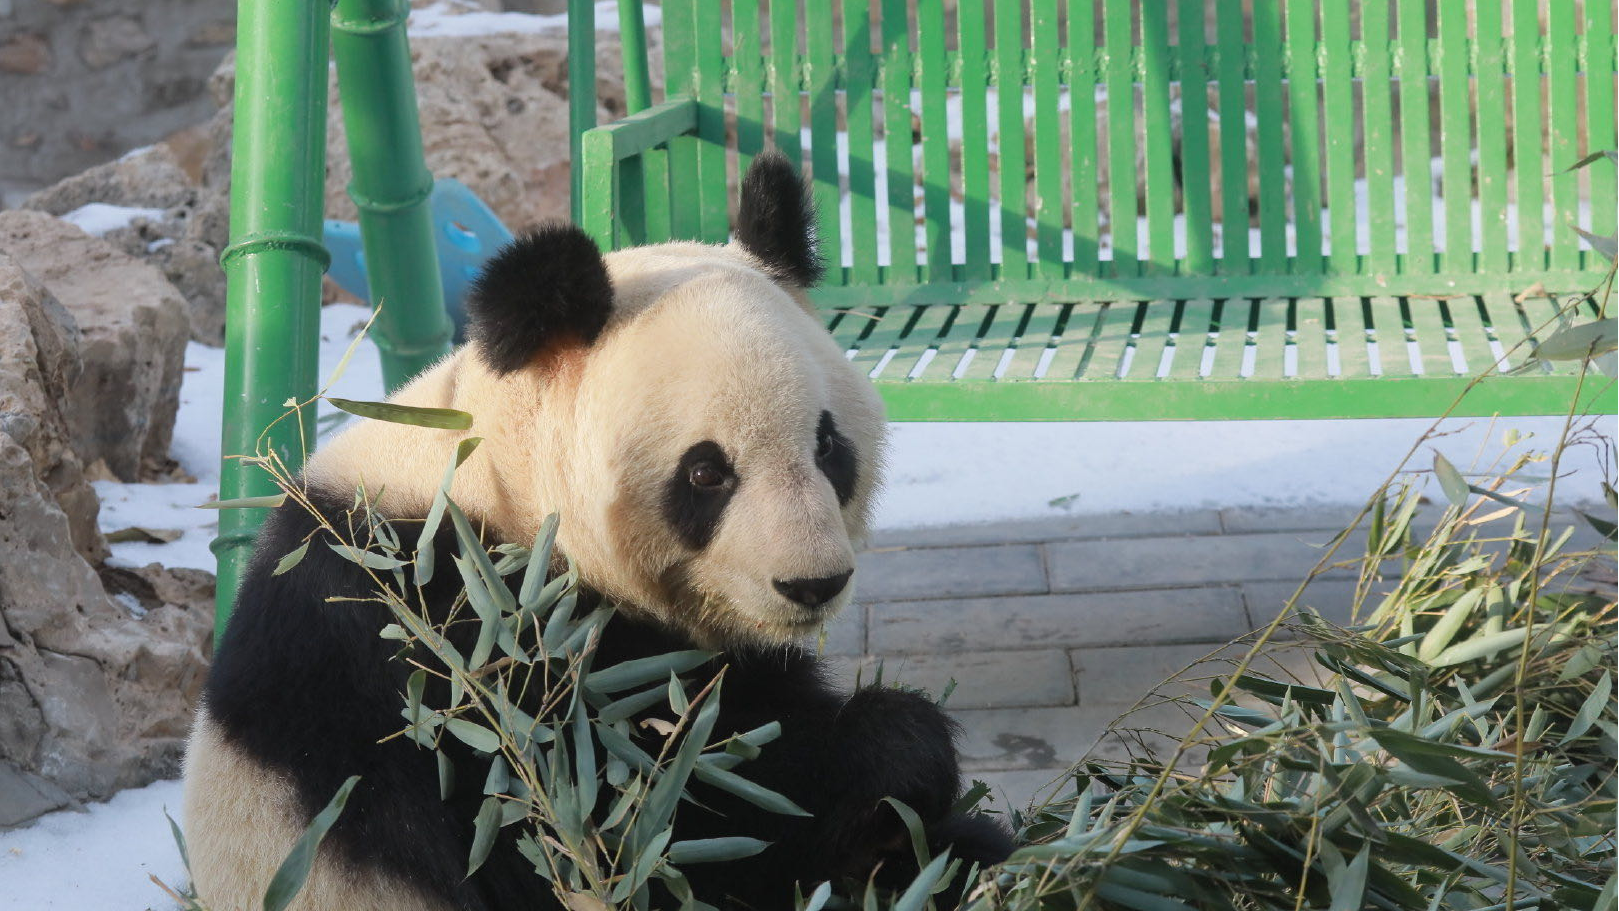 Zoo animals are doing fine, show up online in Beijing amid epidemic